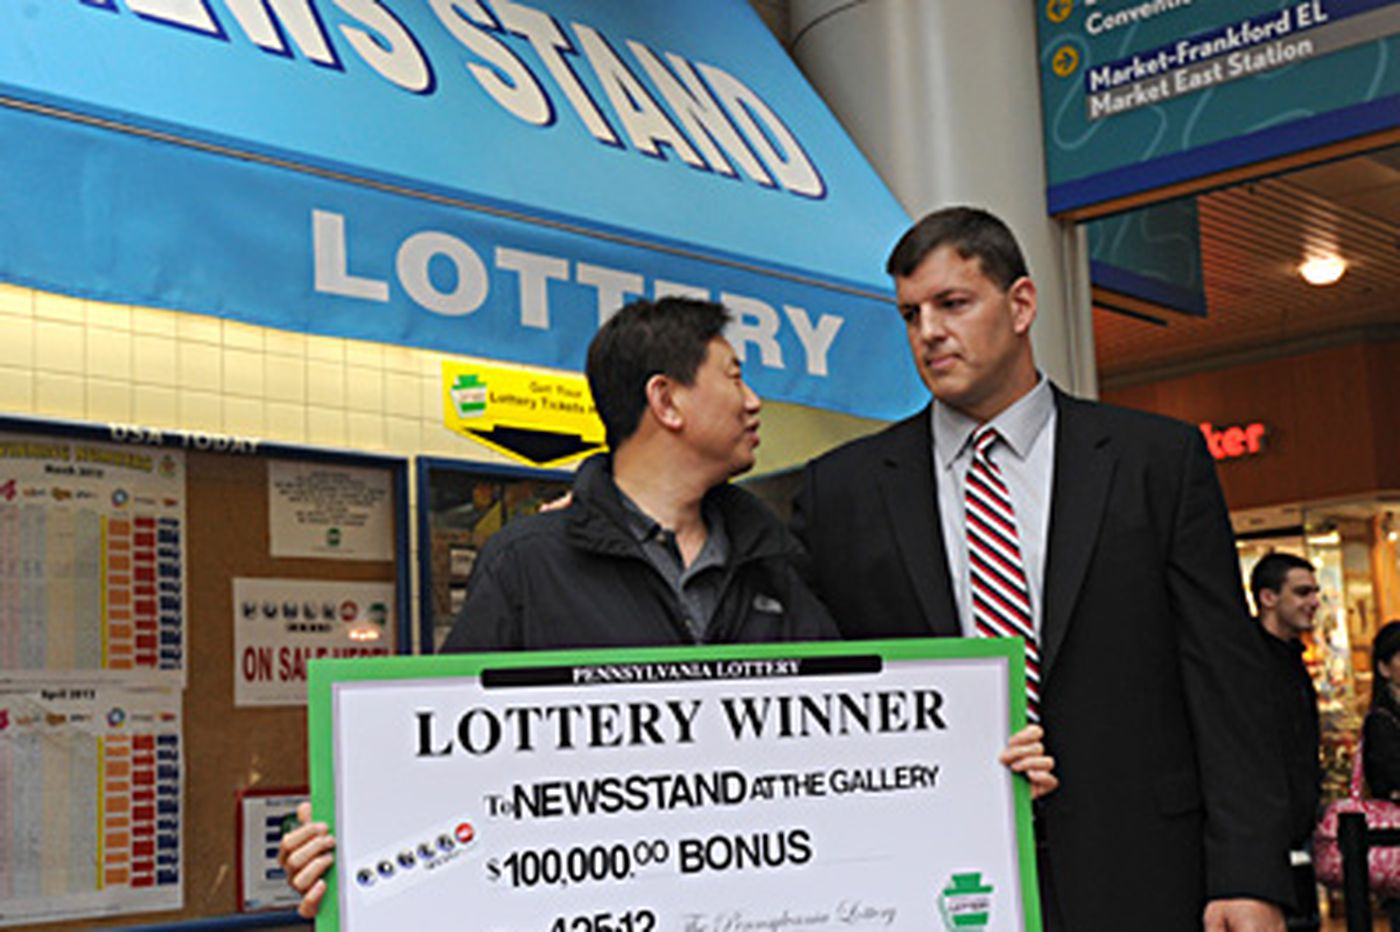 48 SEPTA coworkers to split $172.7M Powerball jackpot